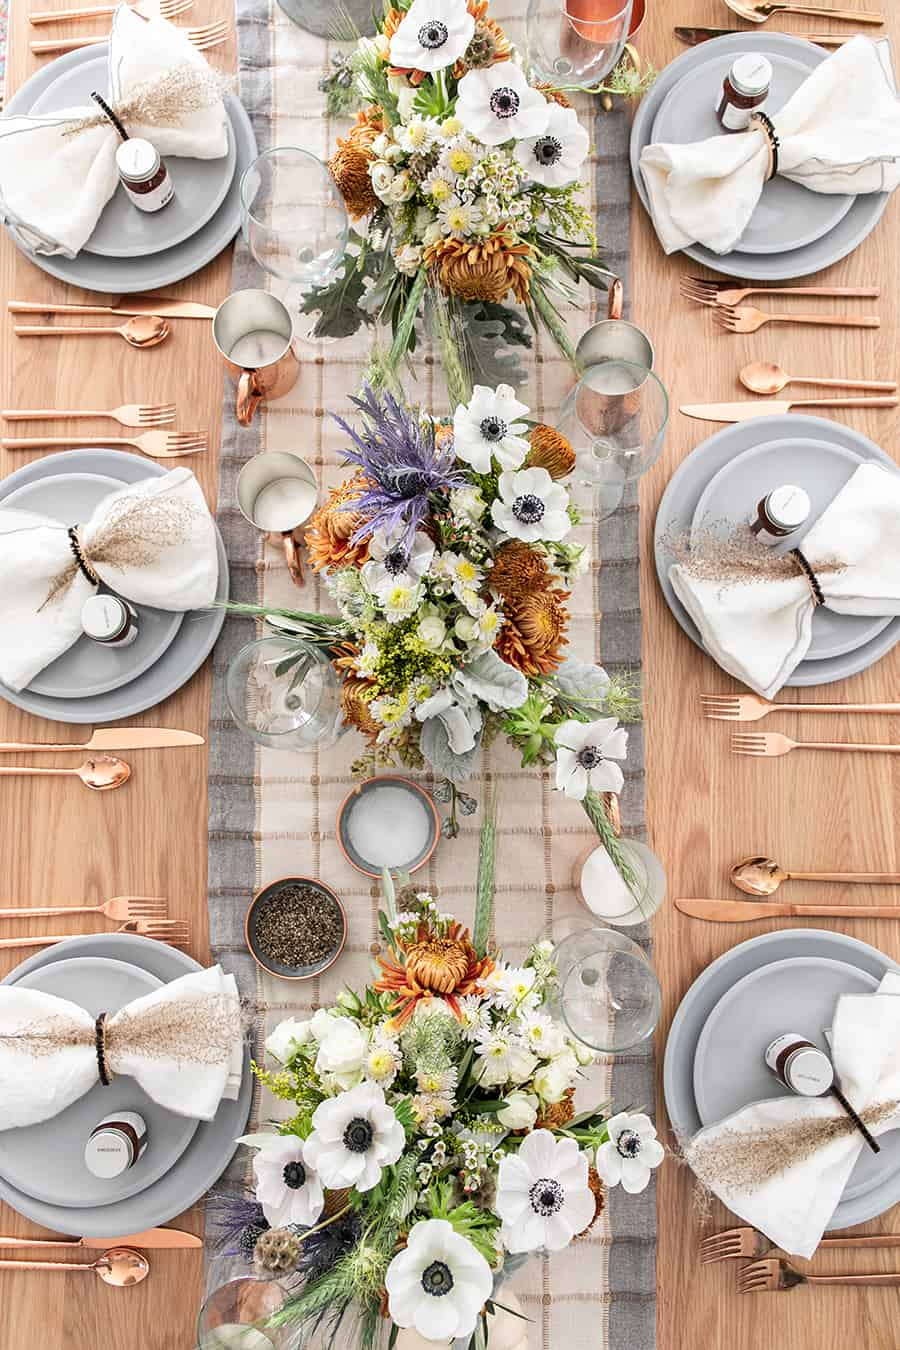 How To Set A Table A Guide With Absolutely Everything To Know Sugar And Charm